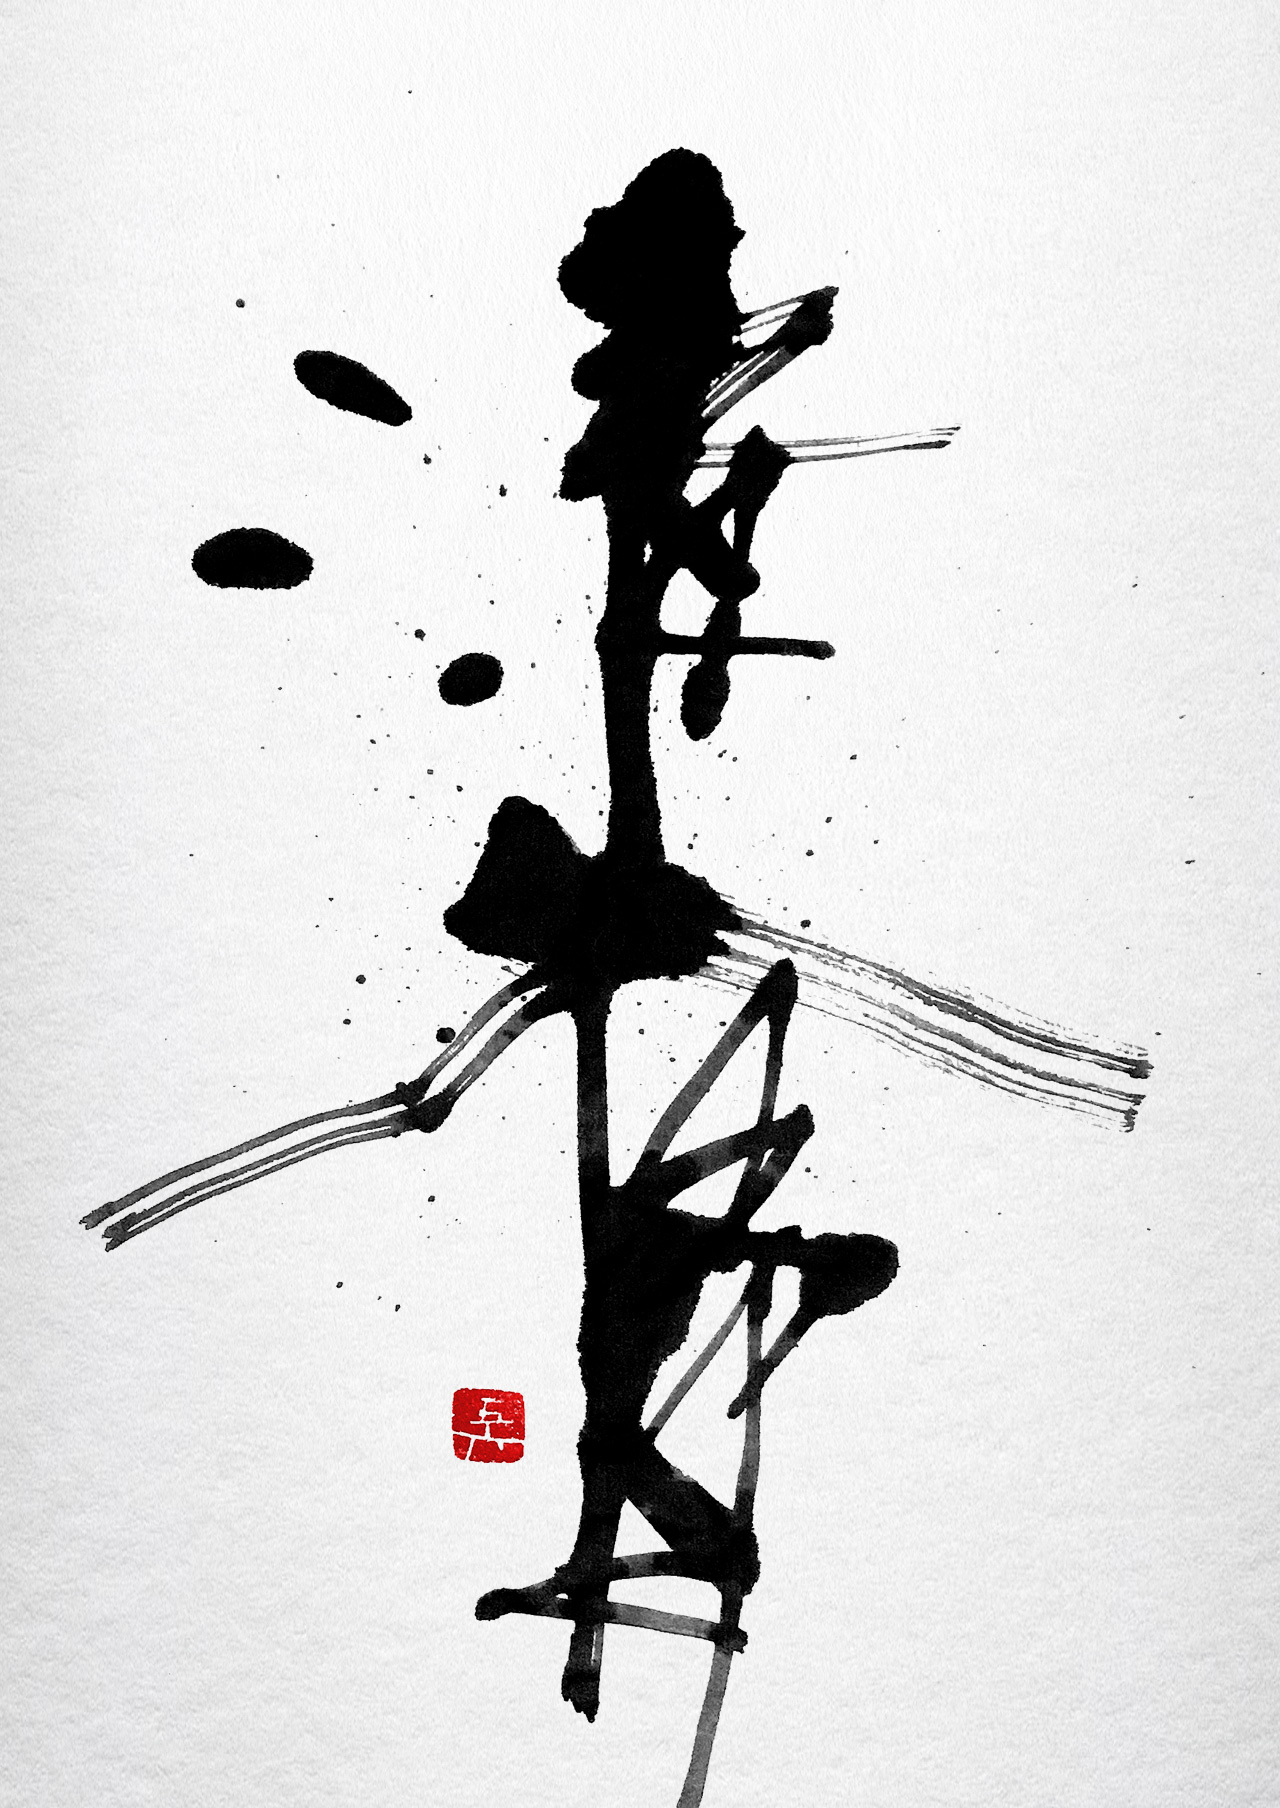 清入骨 bone-snapping purity  書道作品 japaneseart japanesecalligraphy